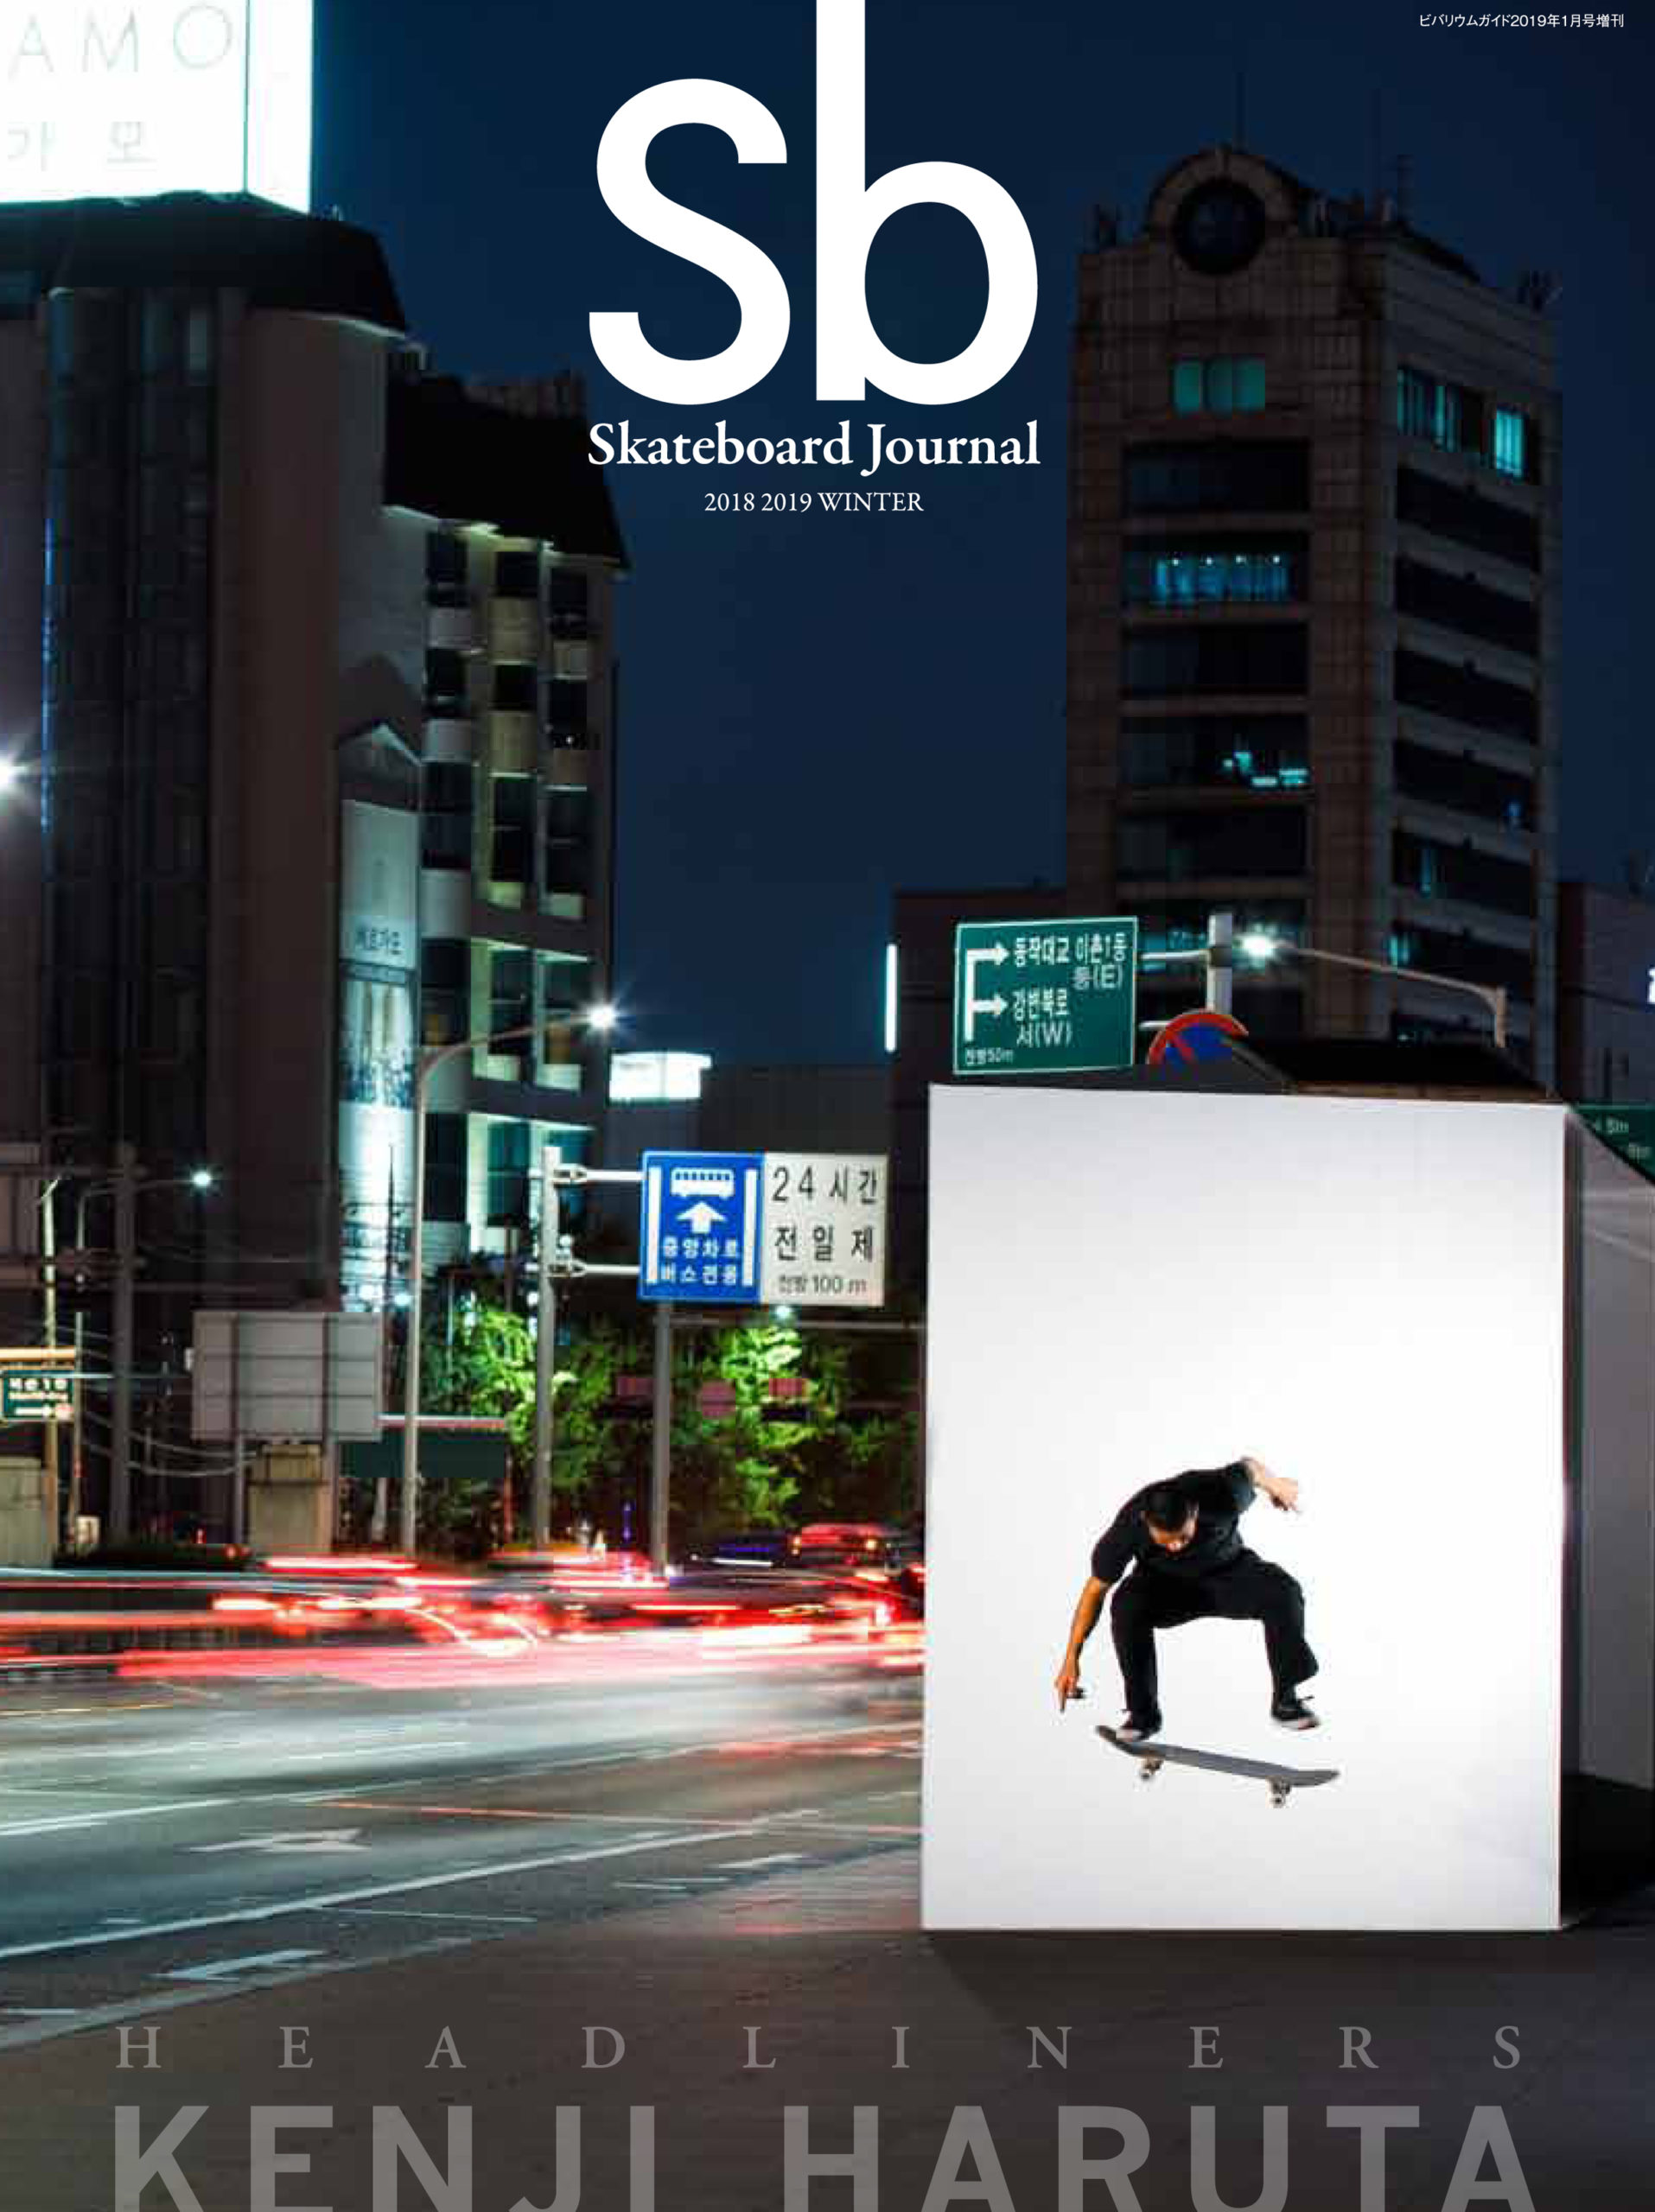 sb Skateboard Journal 2018-19 WINTER #32